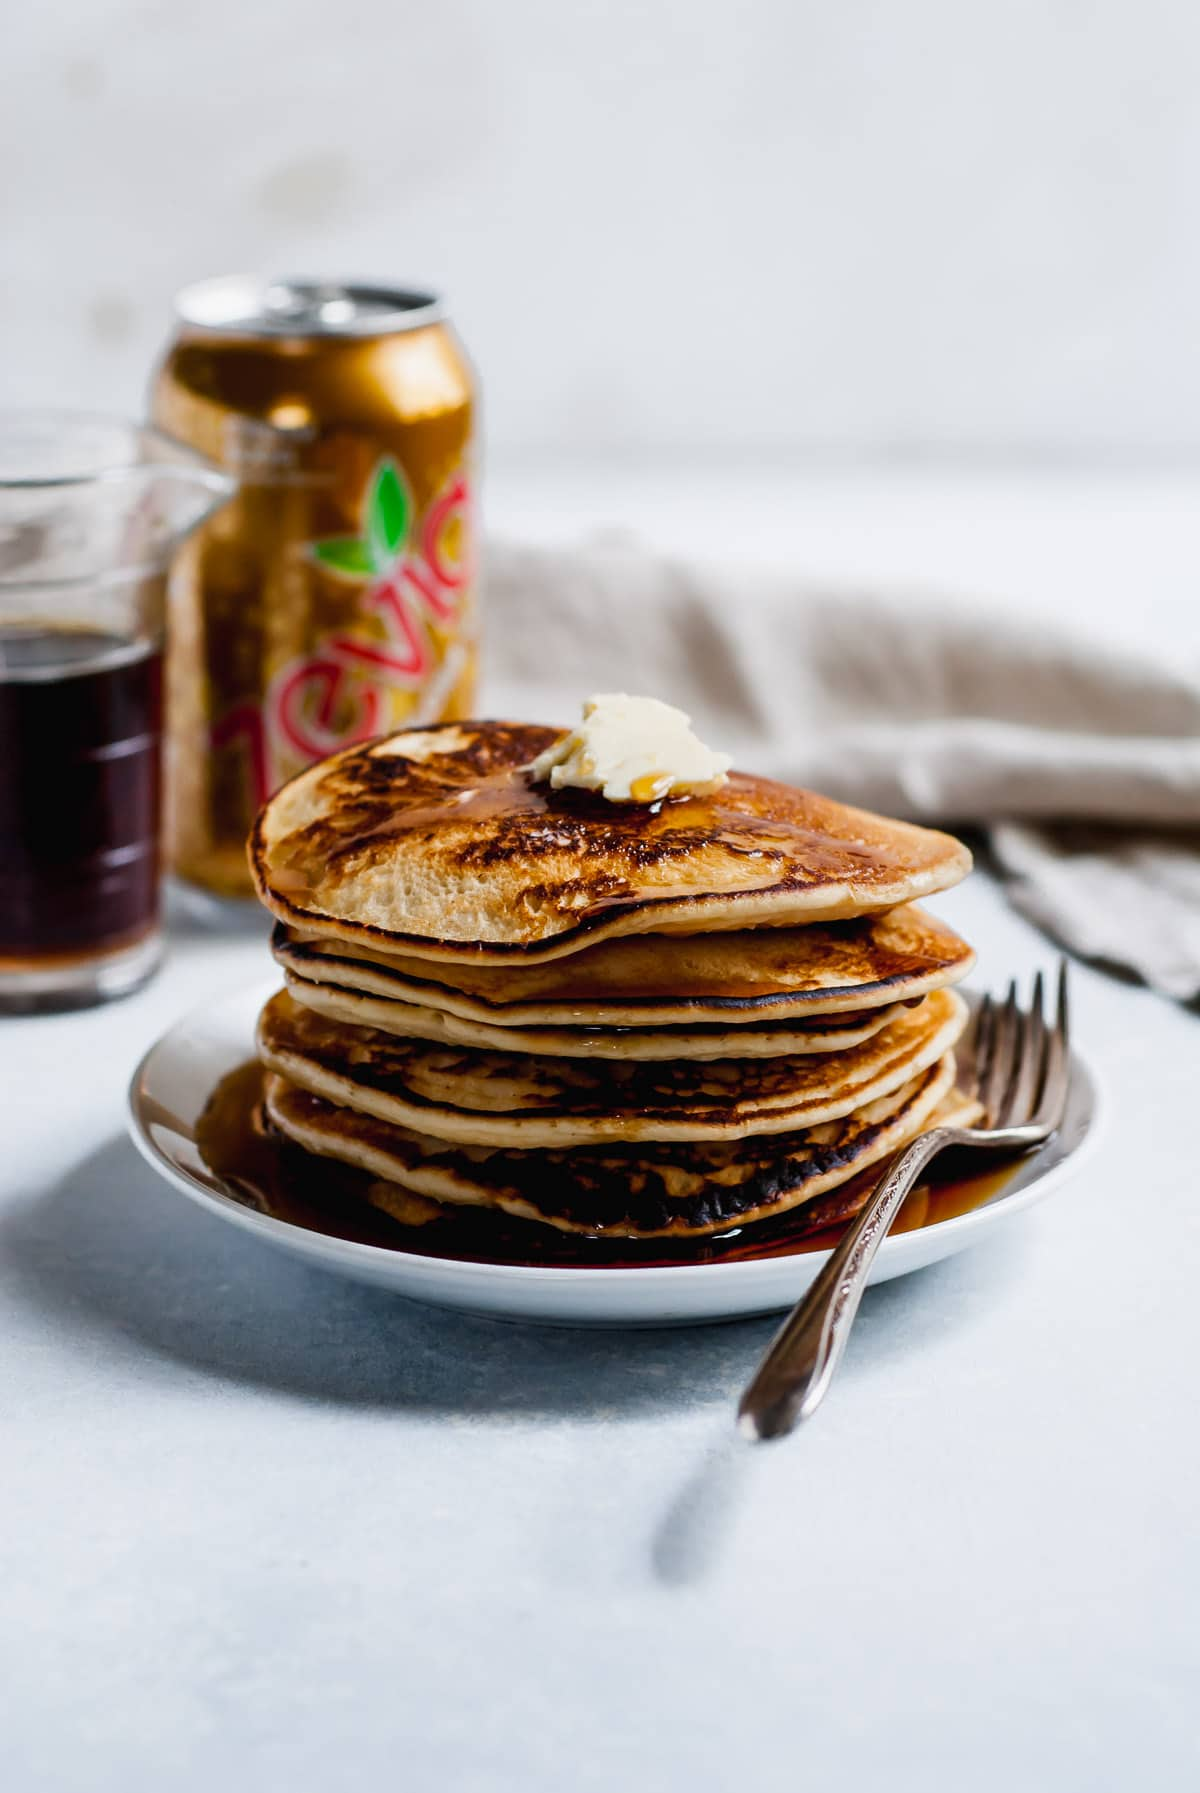 pancakes on a plate with a fork and can of soda